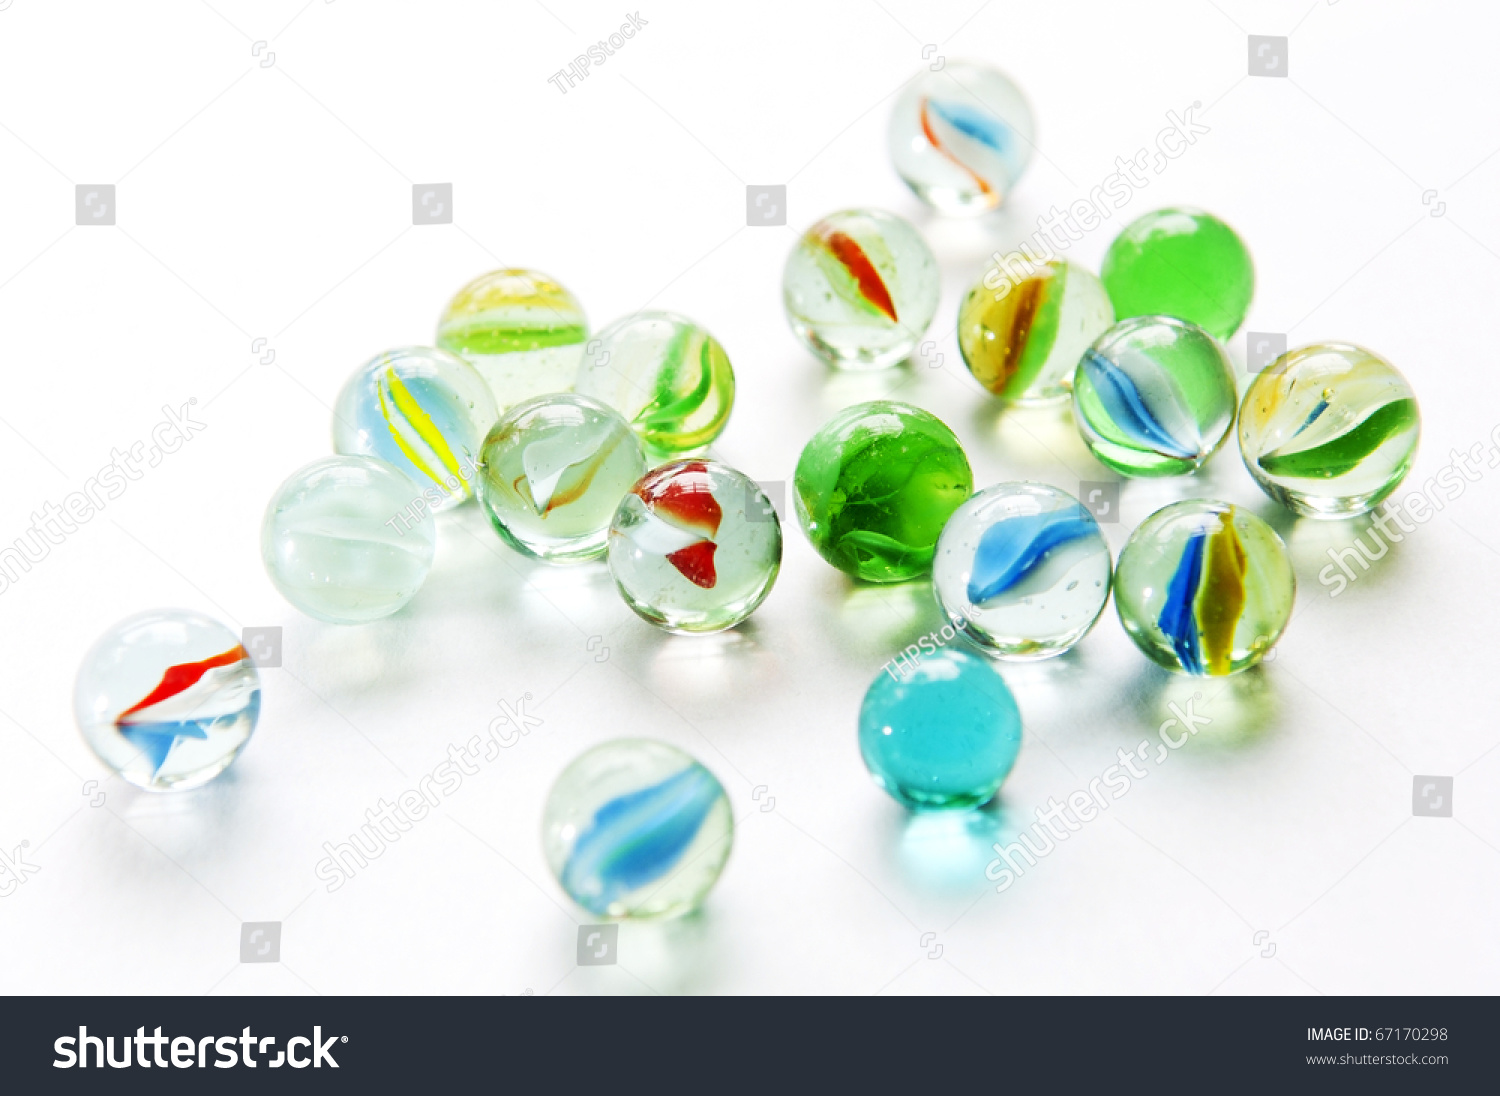 Bright Colored Marbles : Brightly colored marbles different shades on stock photo